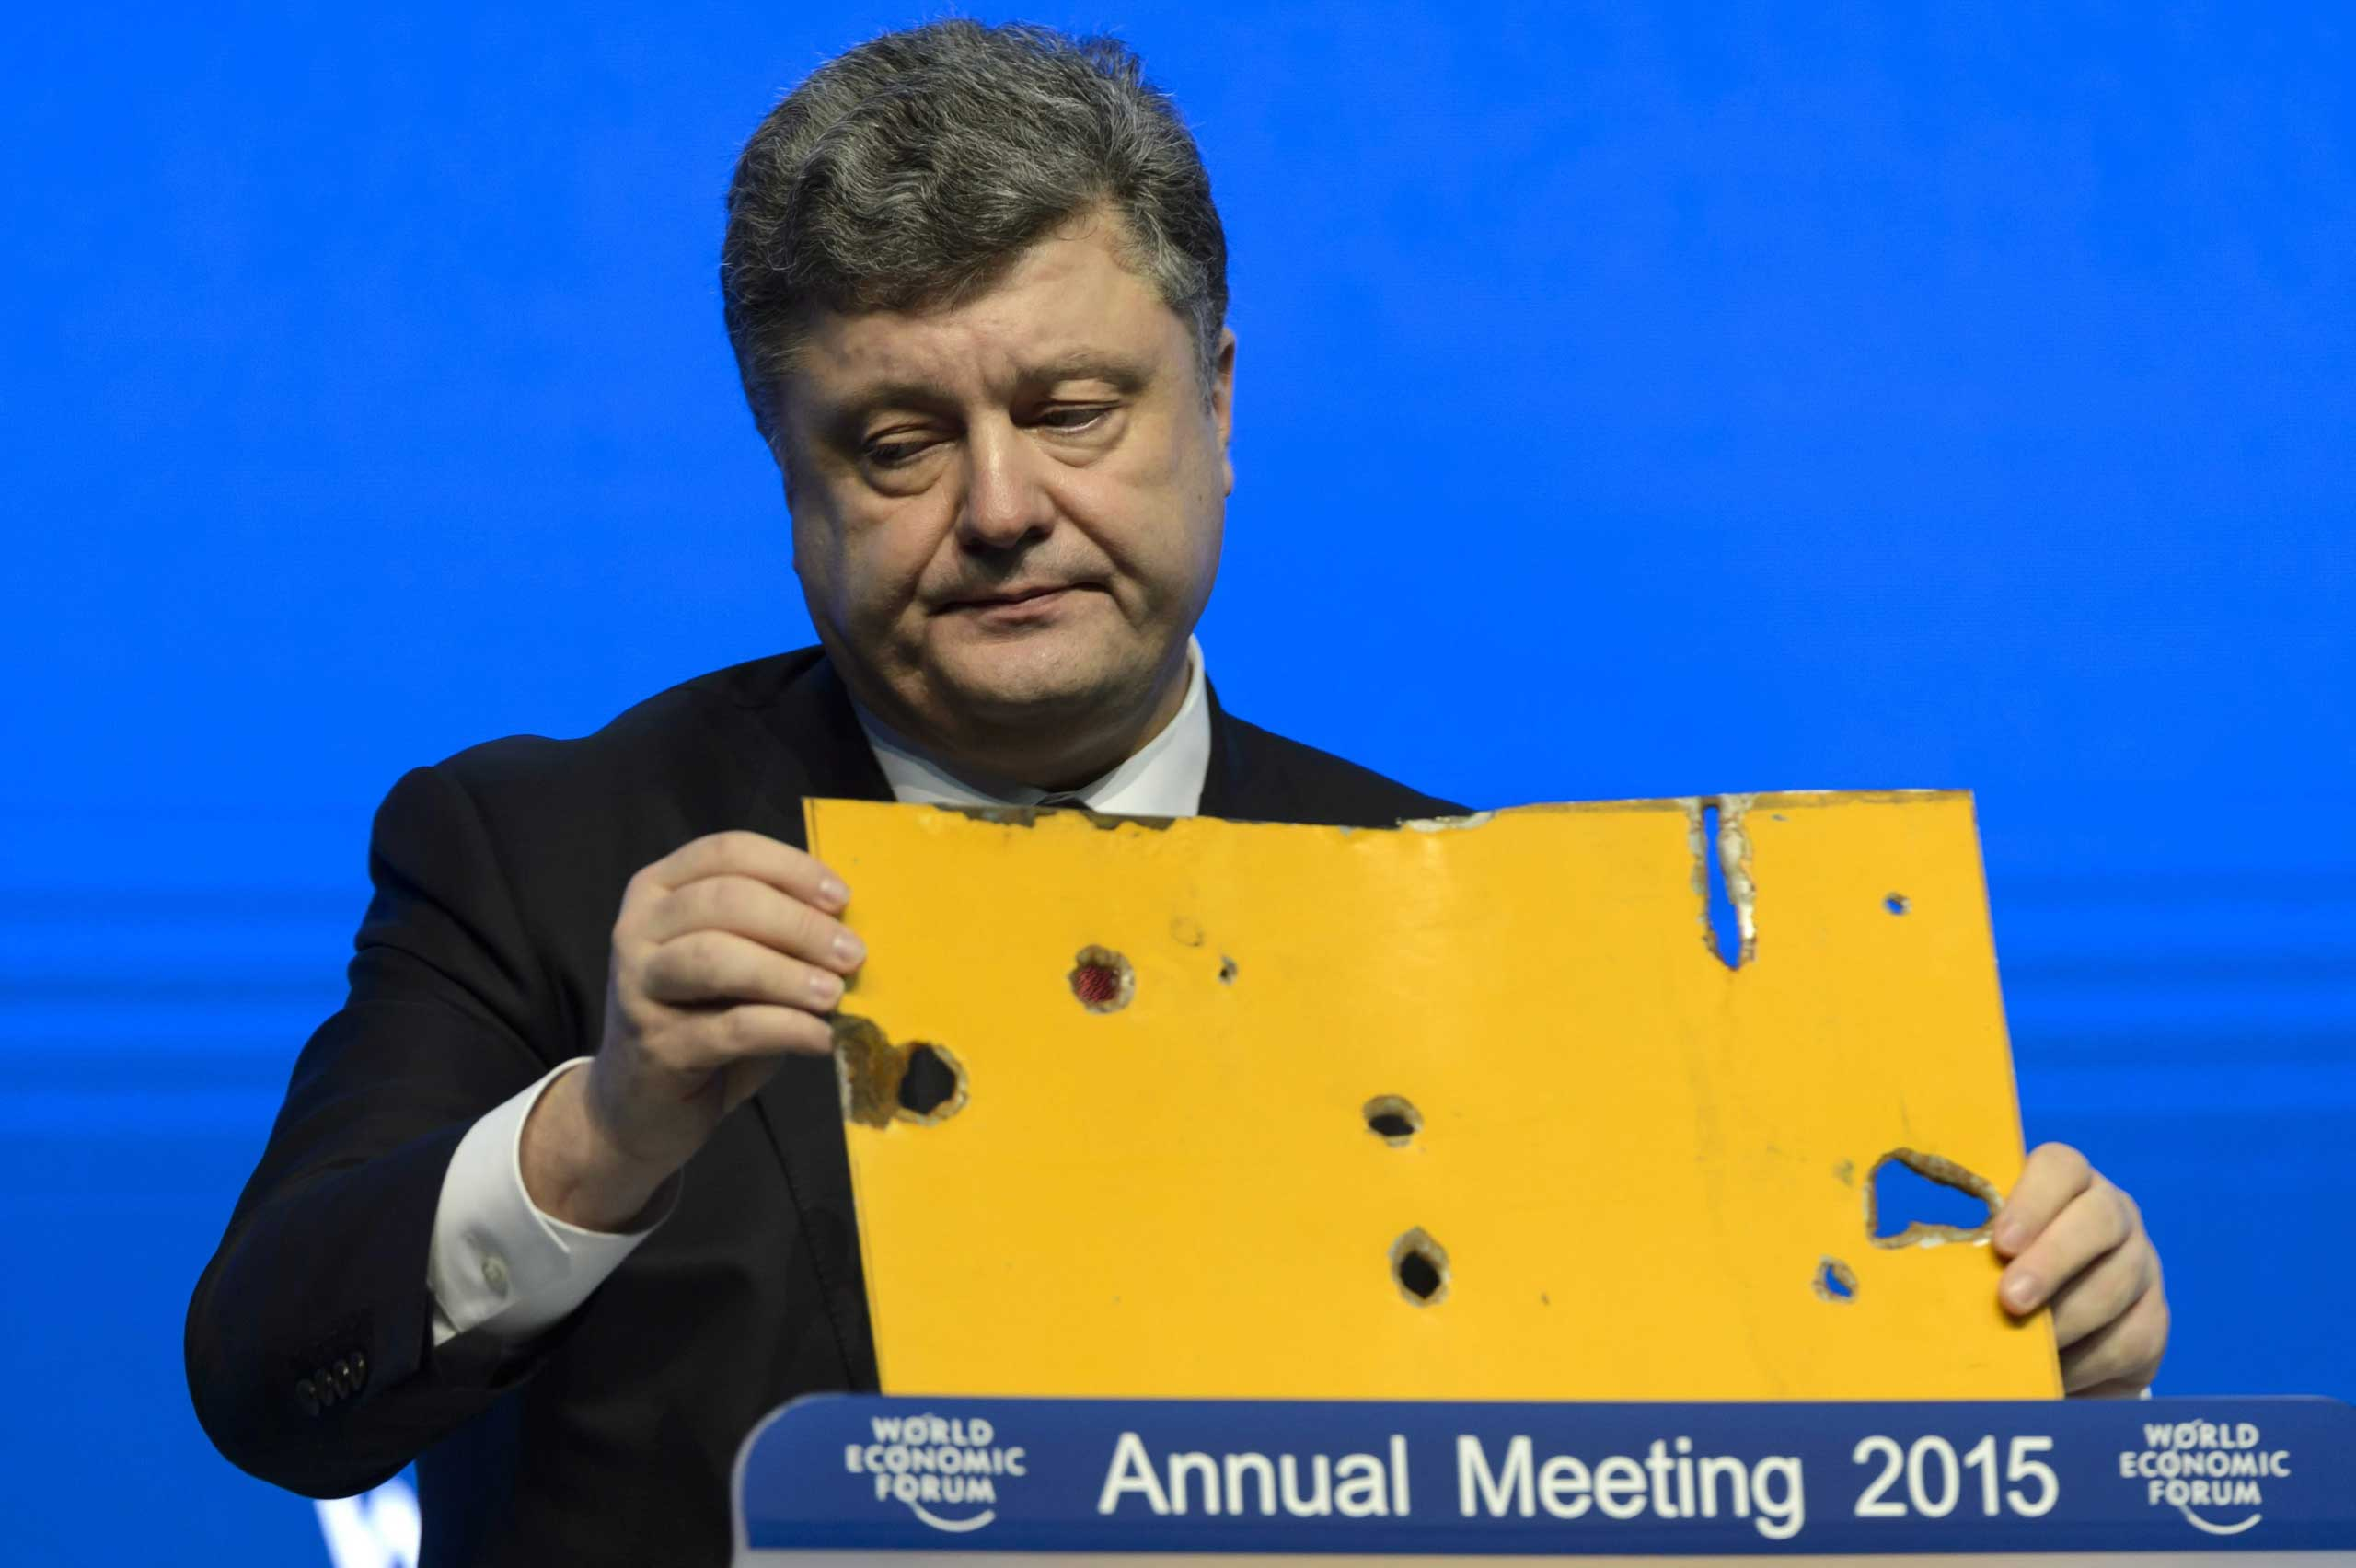 The president of Ukraine Petro Poroshenko speaks with a piece of a damaged passenger bus hit by a shell that killed twelve passengers and injured 13 others at a Ukrainian military checkpoint near the town of Volnovakha, during a panel session on the first day of the 45th Annual Meeting of the World Economic Forum, WEF, in Davos, Jan. 21, 2015.